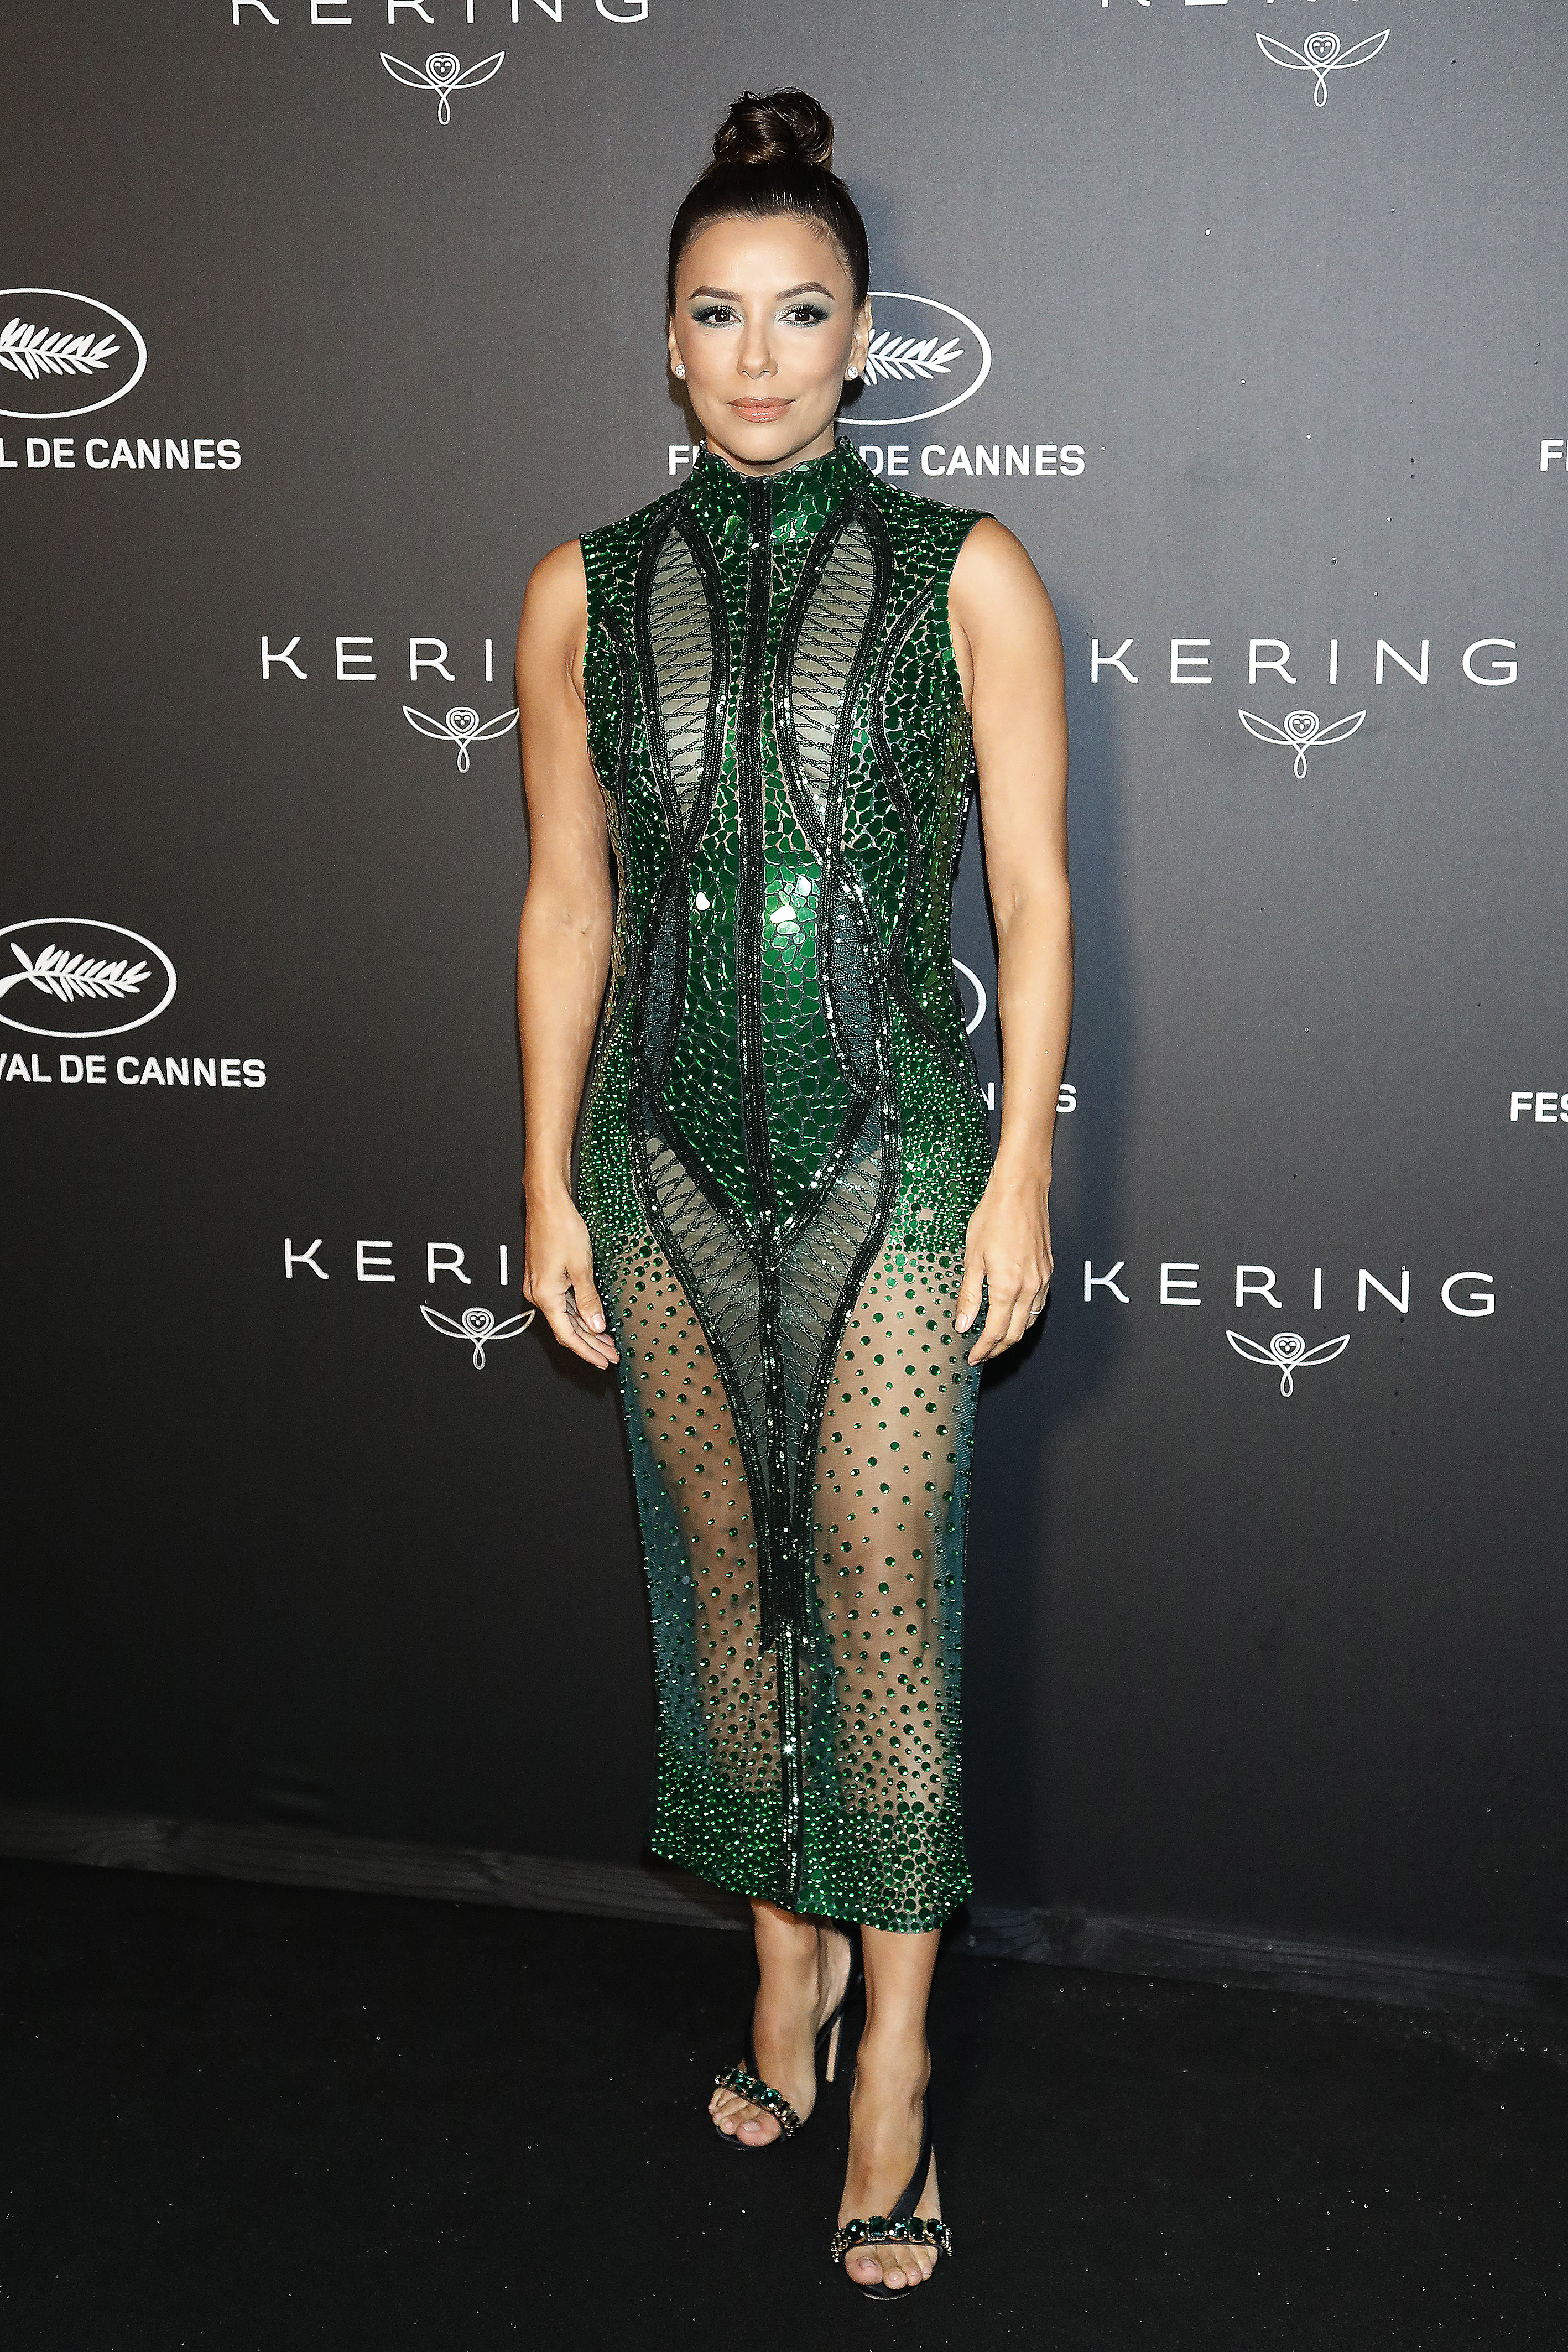 Kering And Cannes Festival Official Dinner Photocall at Place de la Castre